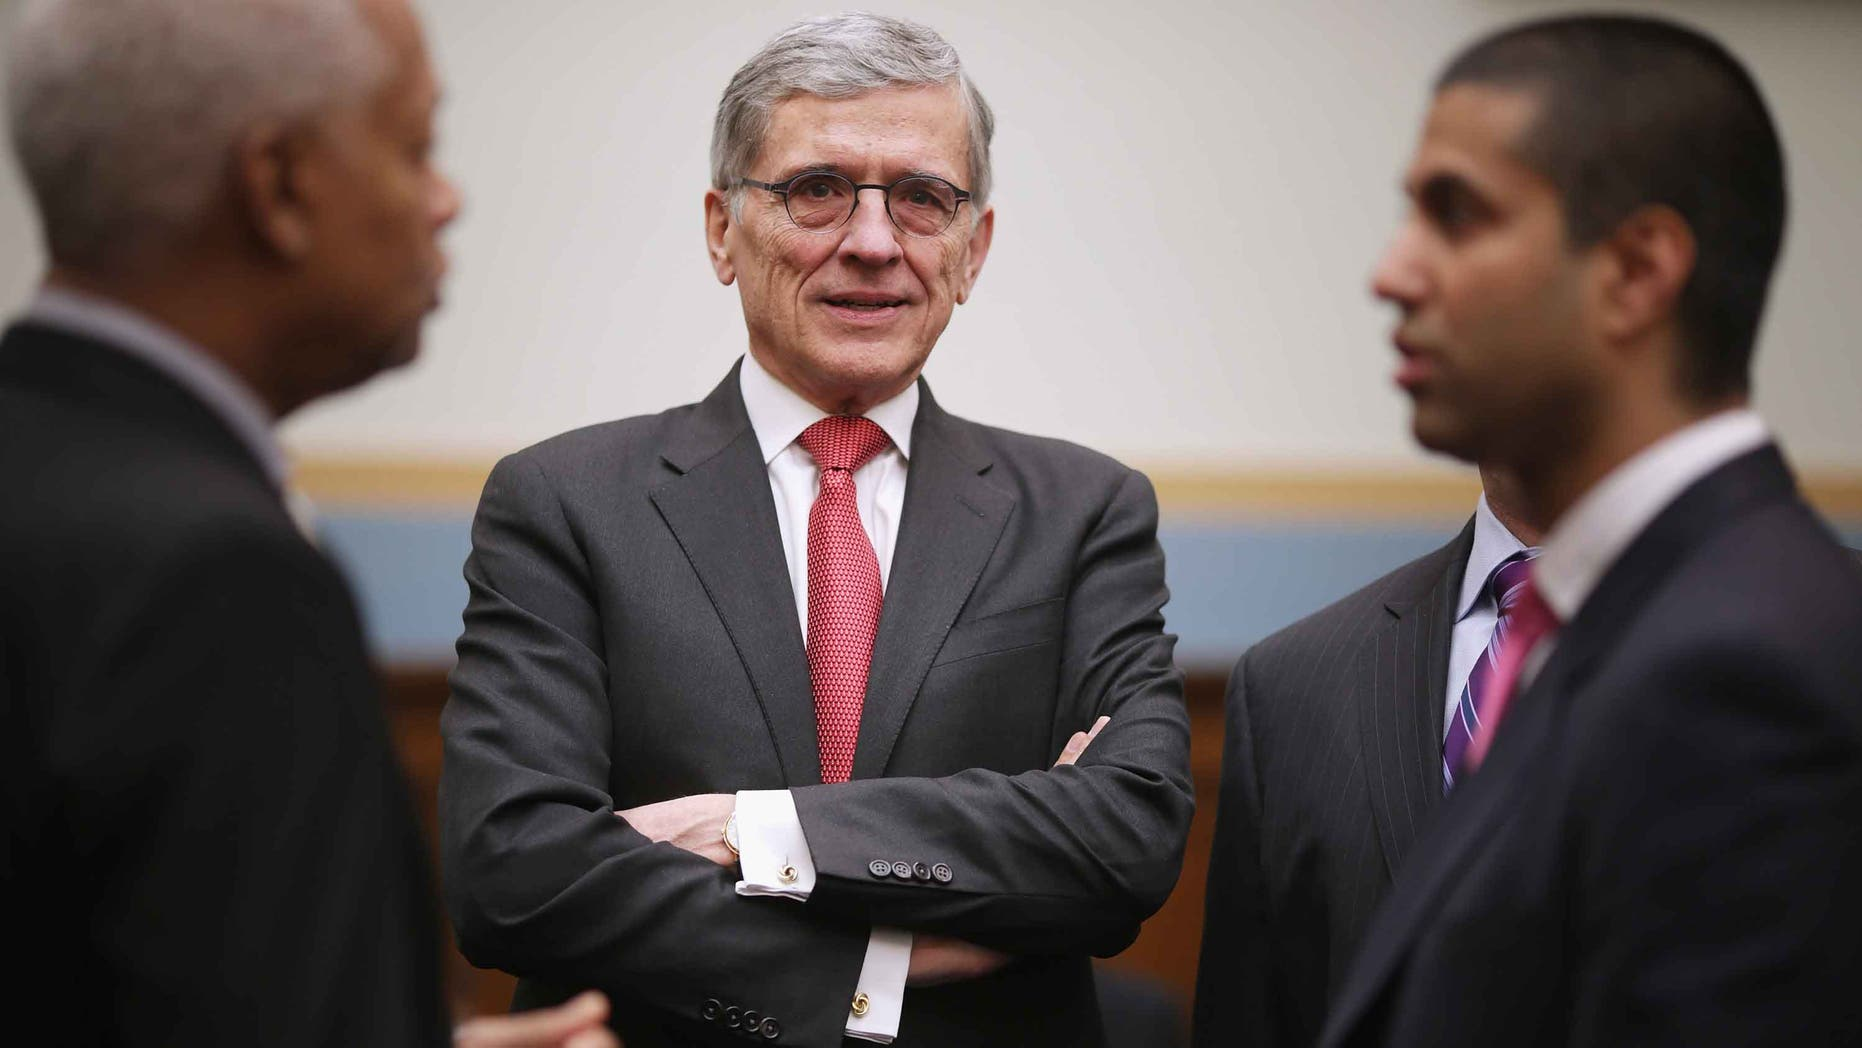 Federal Communications Commission Chairman Tom Wheeler in a 2015 file photo.